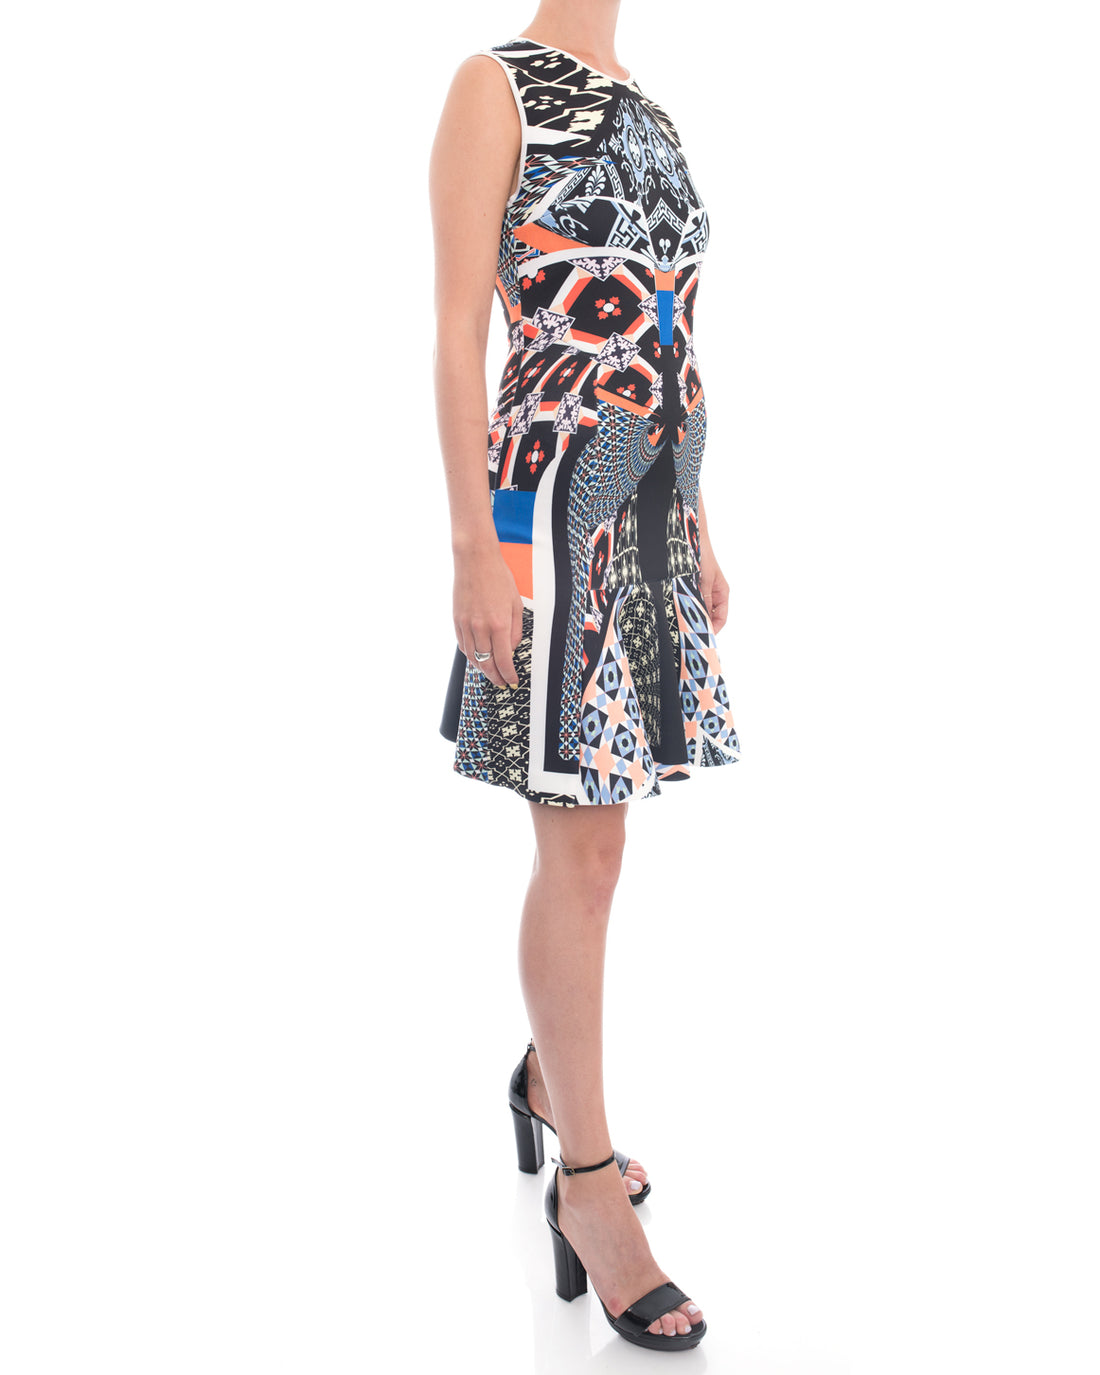 Clover Canyon Neoprene Multi Colour Dress - S